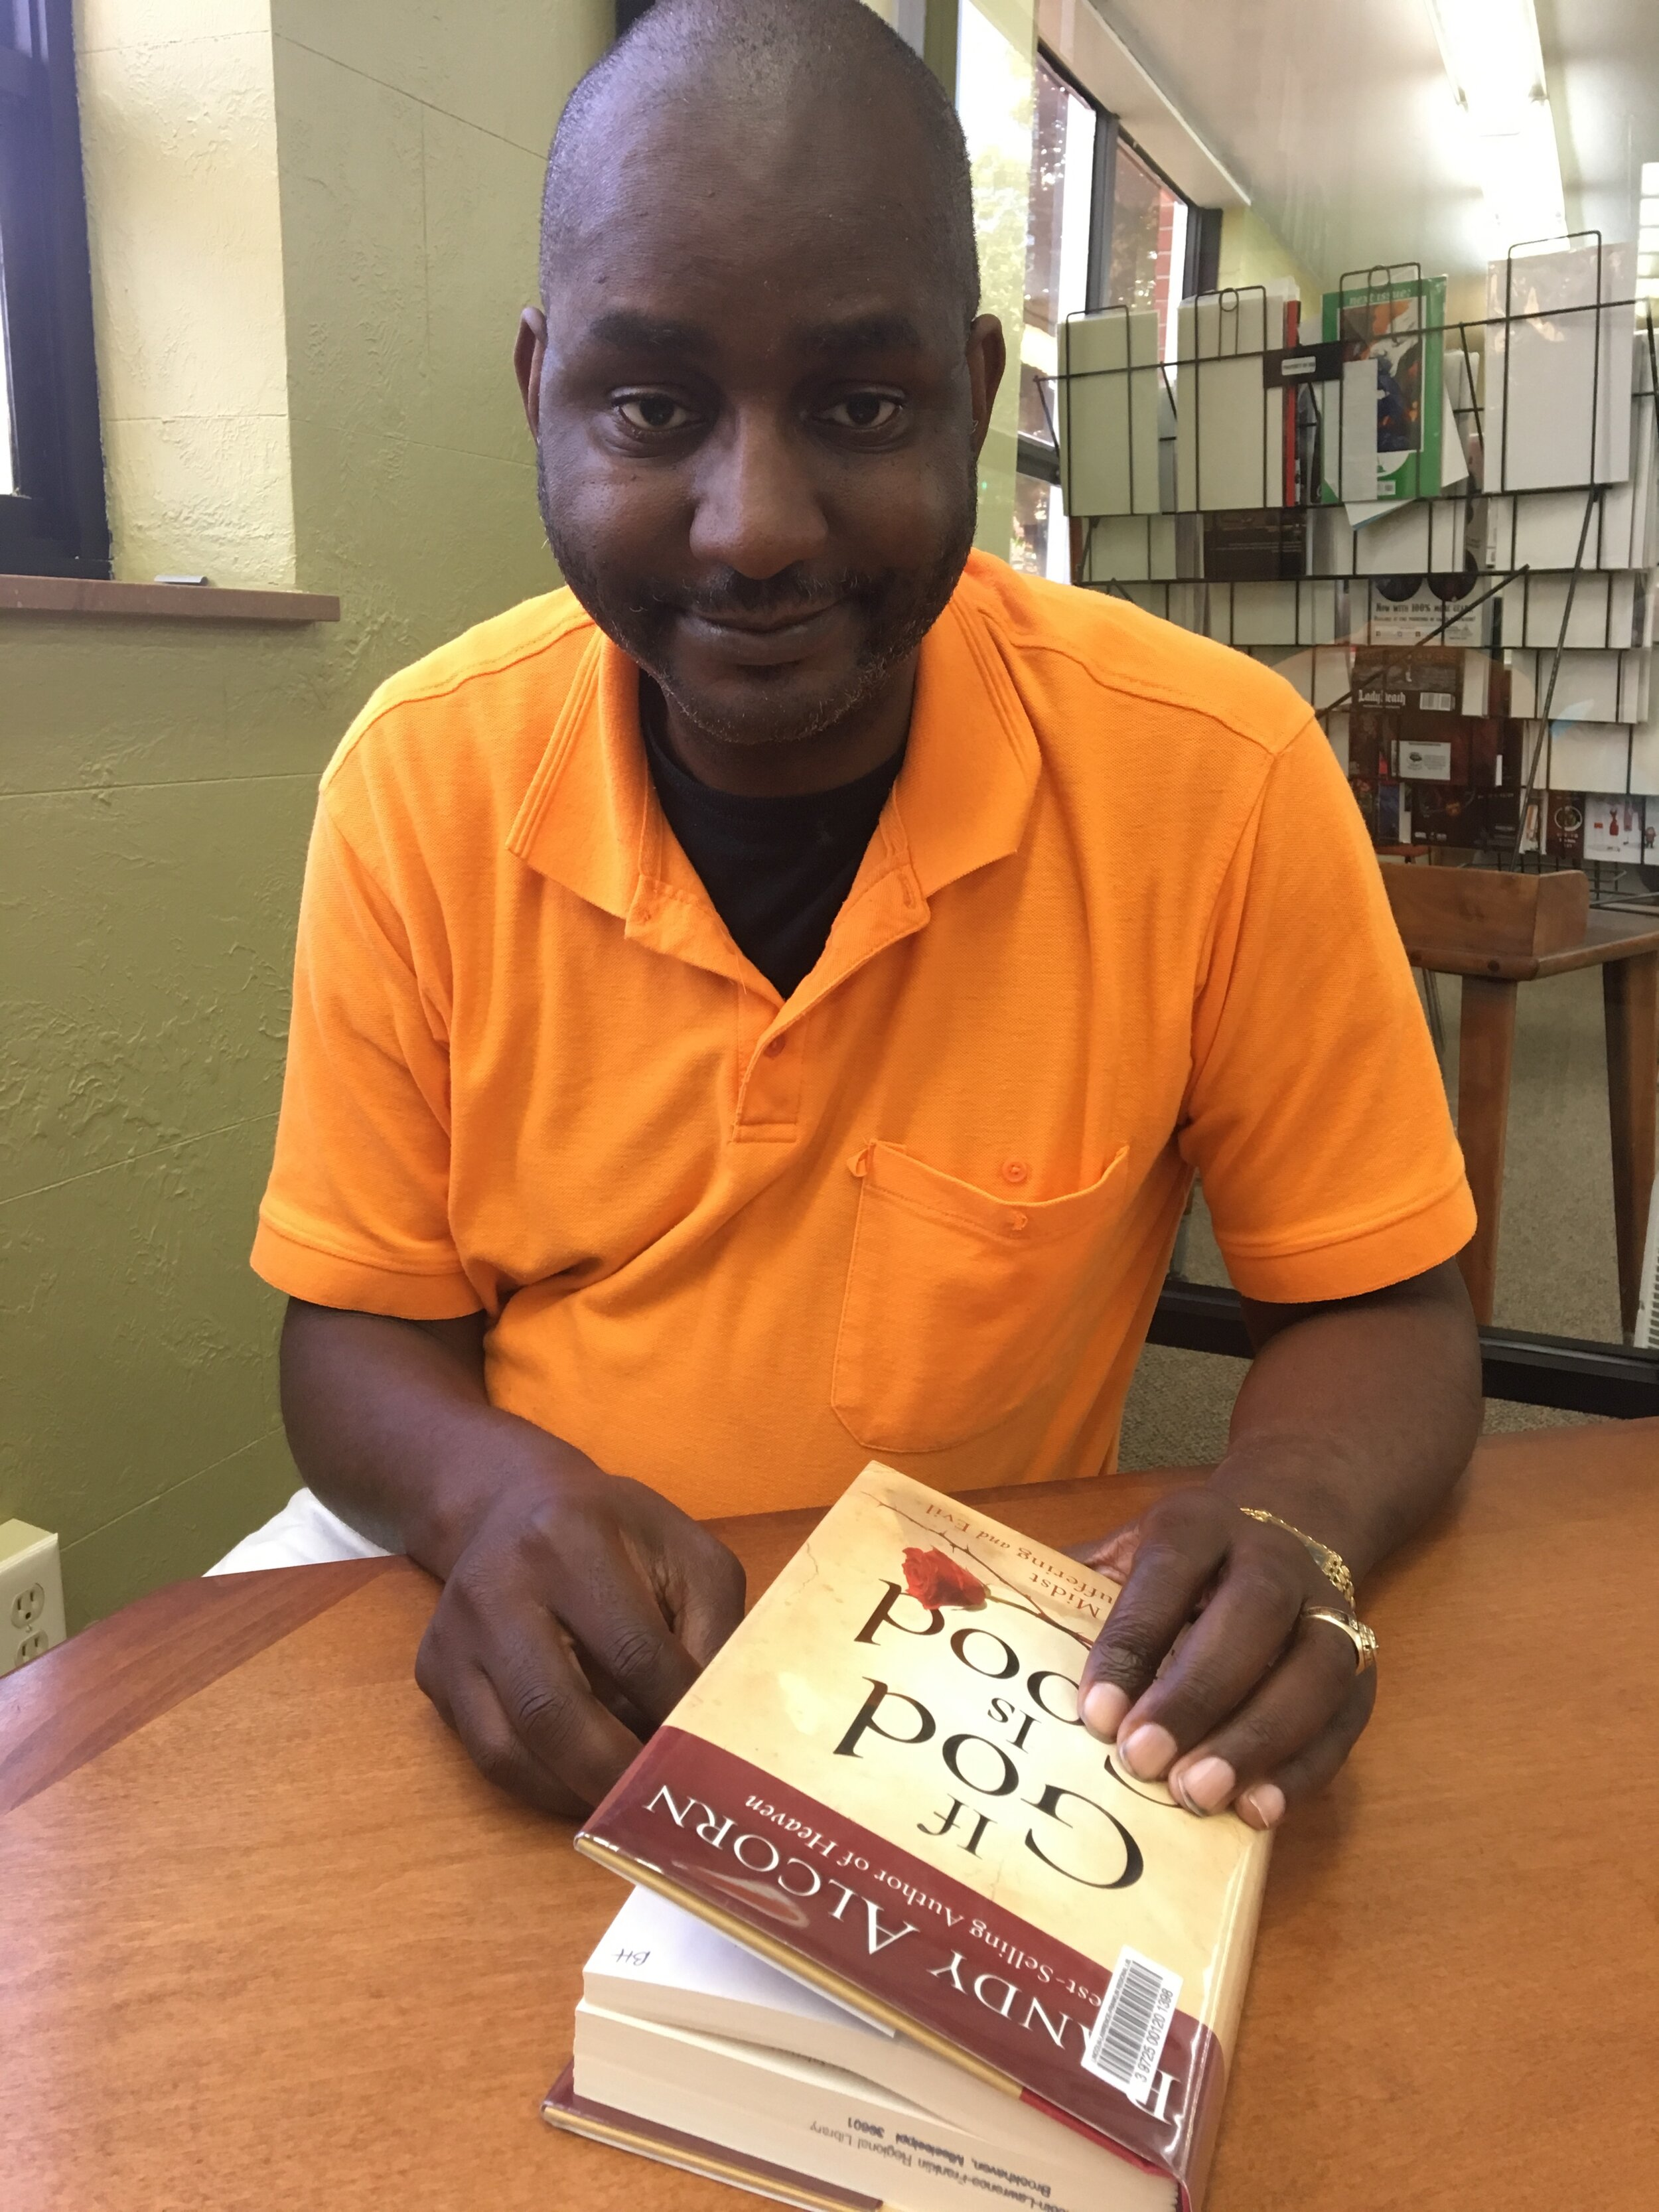 Bobby Thomas finds peace in listening to the Mississippi Mass Choir and reading books about religion.   Billy Watkins/Mississippi Center for Investigative Reporting